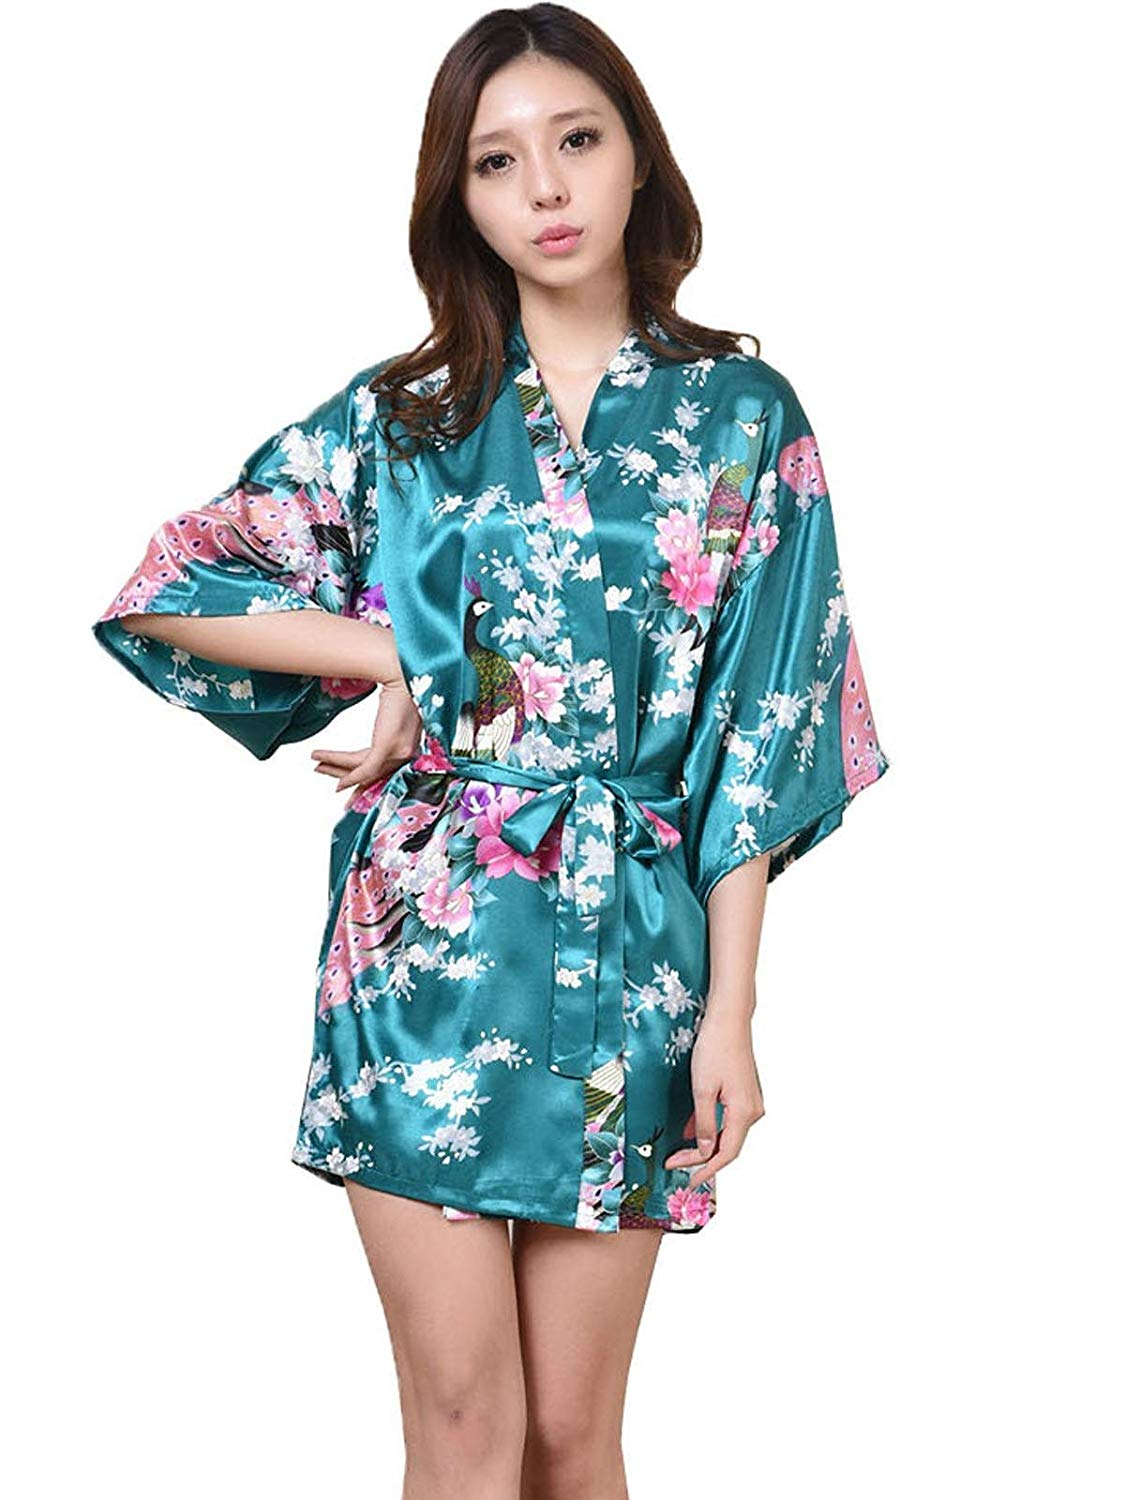 5792ebea26 Get Quotations · Pesters Nightwear Robes Pajama Robes Sleepwear Robes Women Robes  Robes